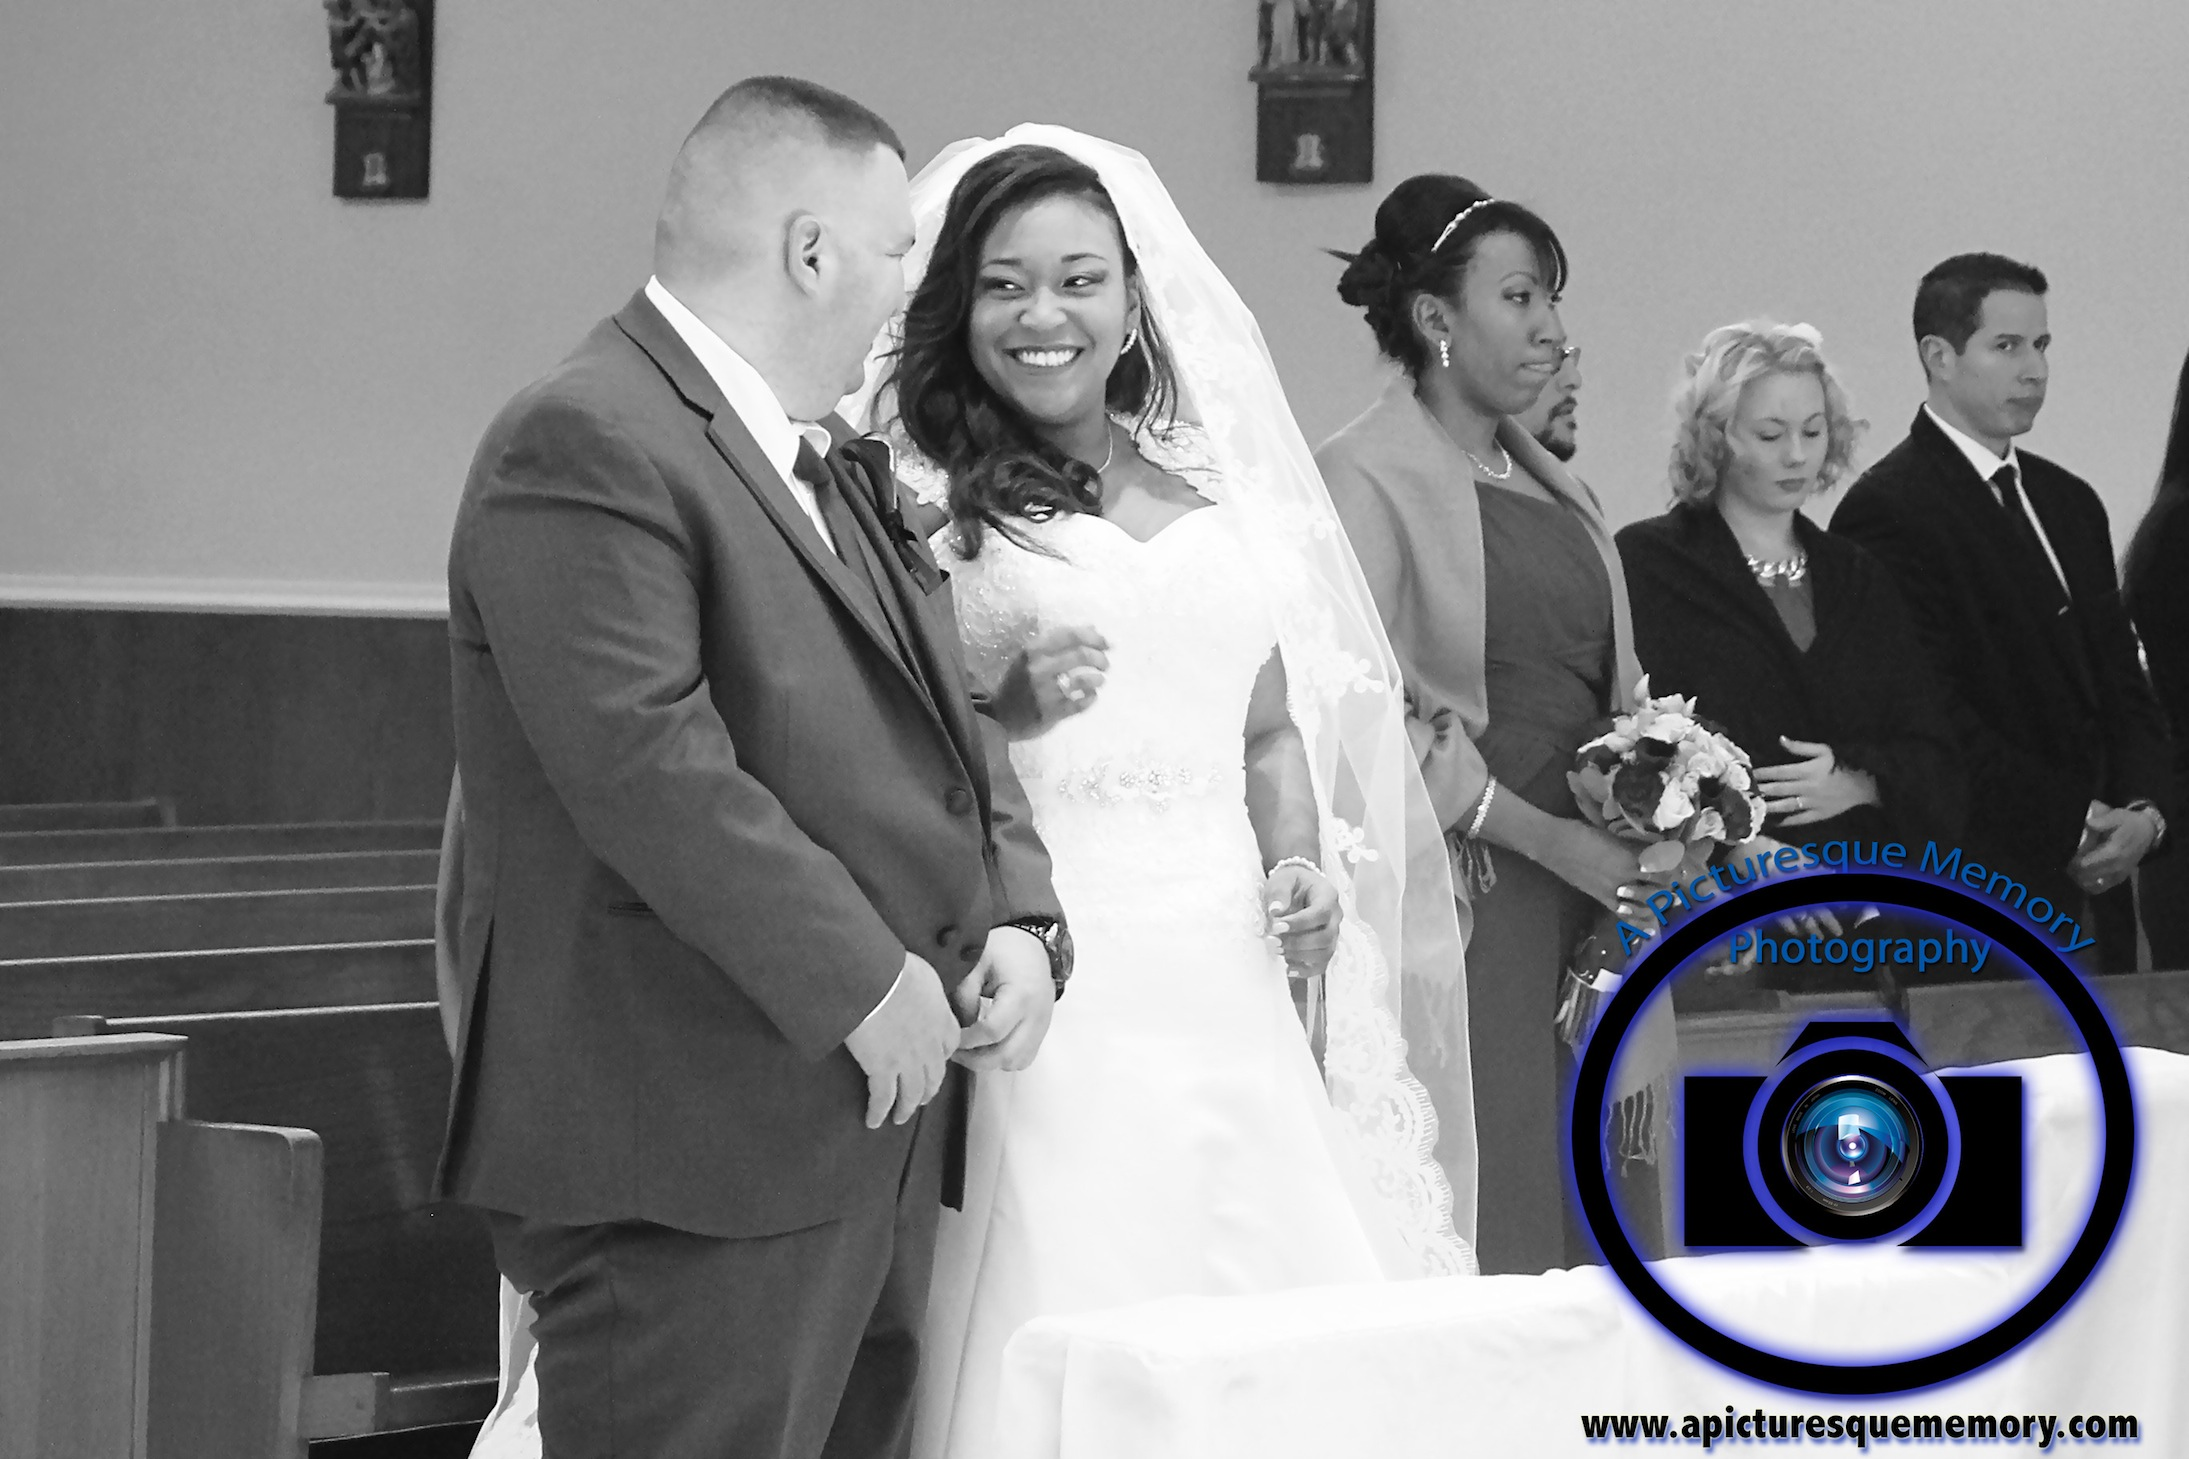 #njwedding, #njweddingphotography, #newbrunswickweddingphotographer#weddingphotos, #apicturesquememoryphotography, #ourladyofmountcarmelweddingphotographer, #weddingceremony, #brideandgroom